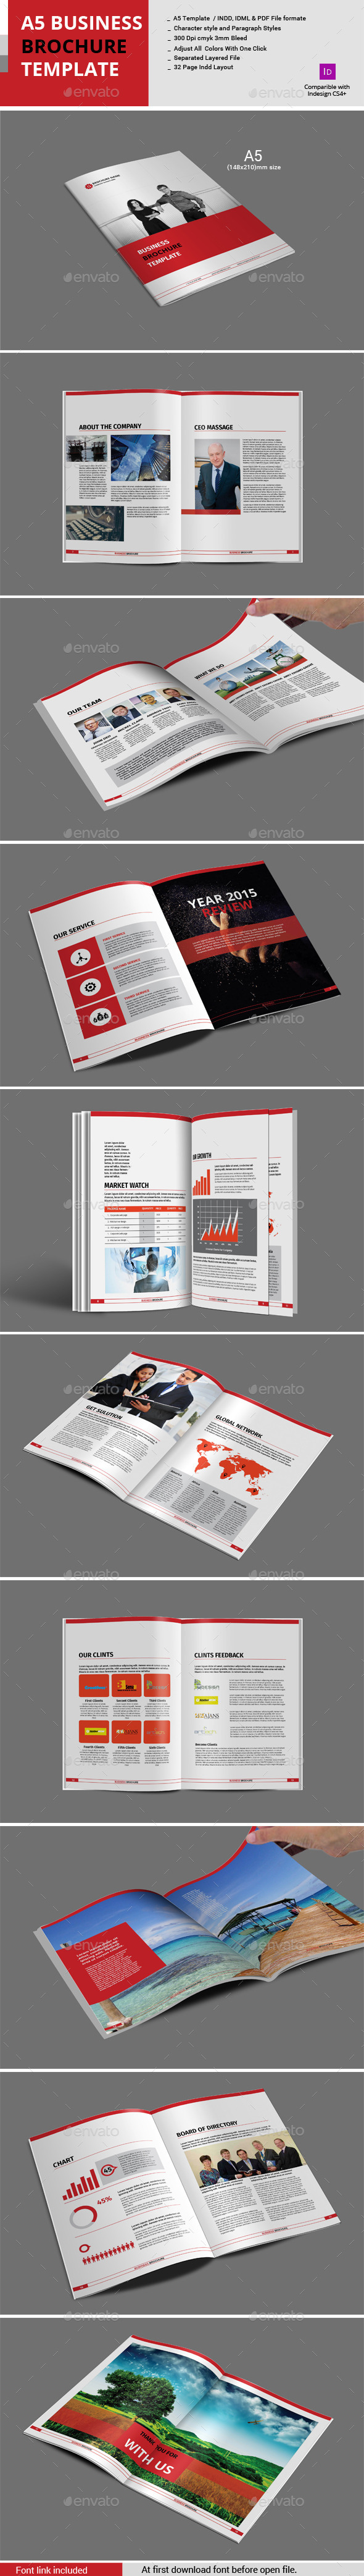 GraphicRiver A5 Business Brochure Template 10919782